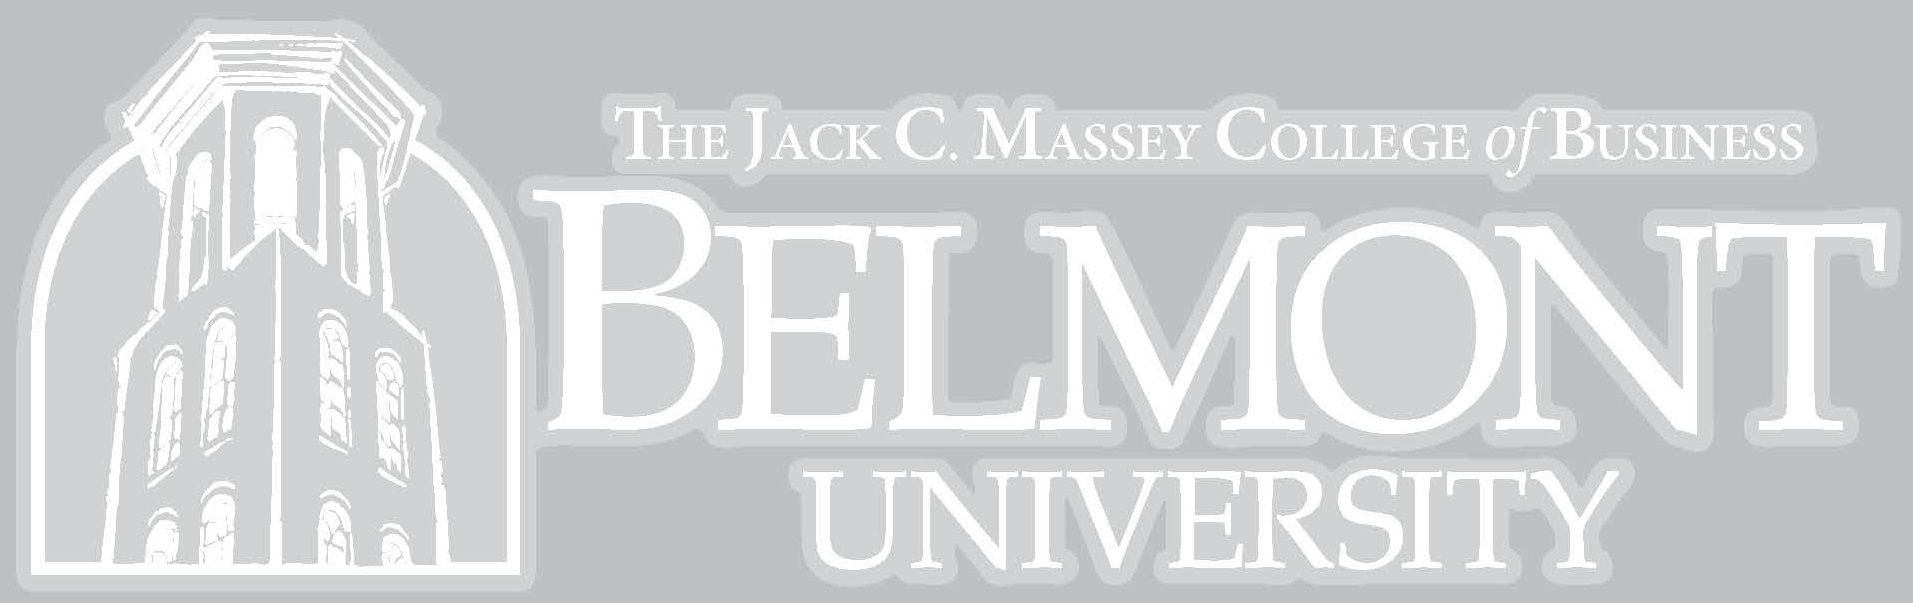 Image For MASSEY BUSINESS DECAL